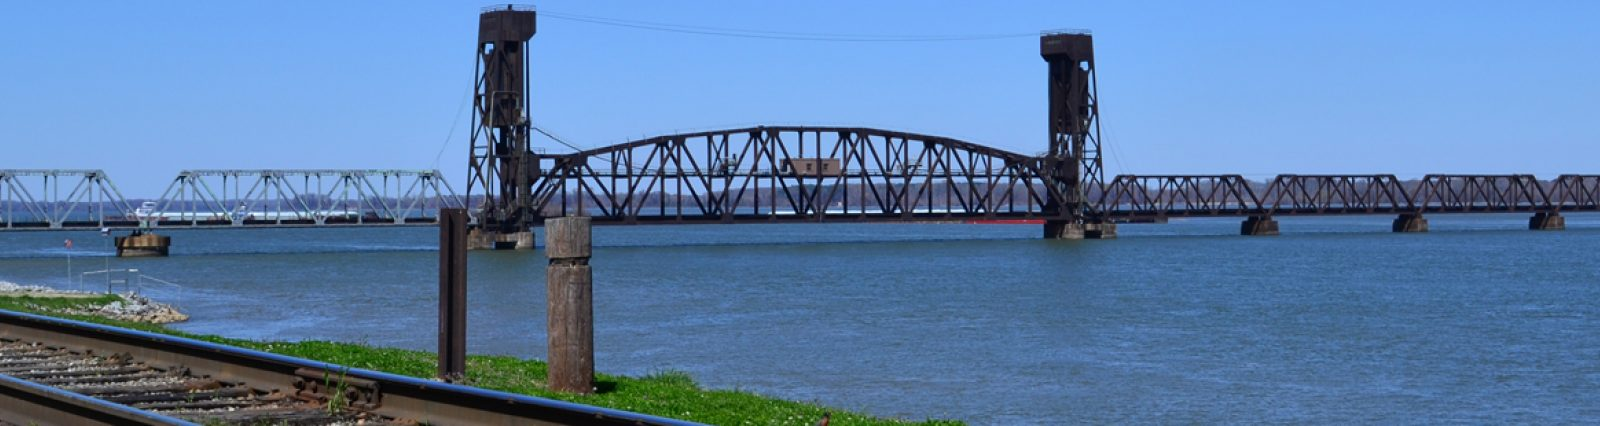 Tennessee Valley Region - Train Bridge over the Tennessee River in Decatur